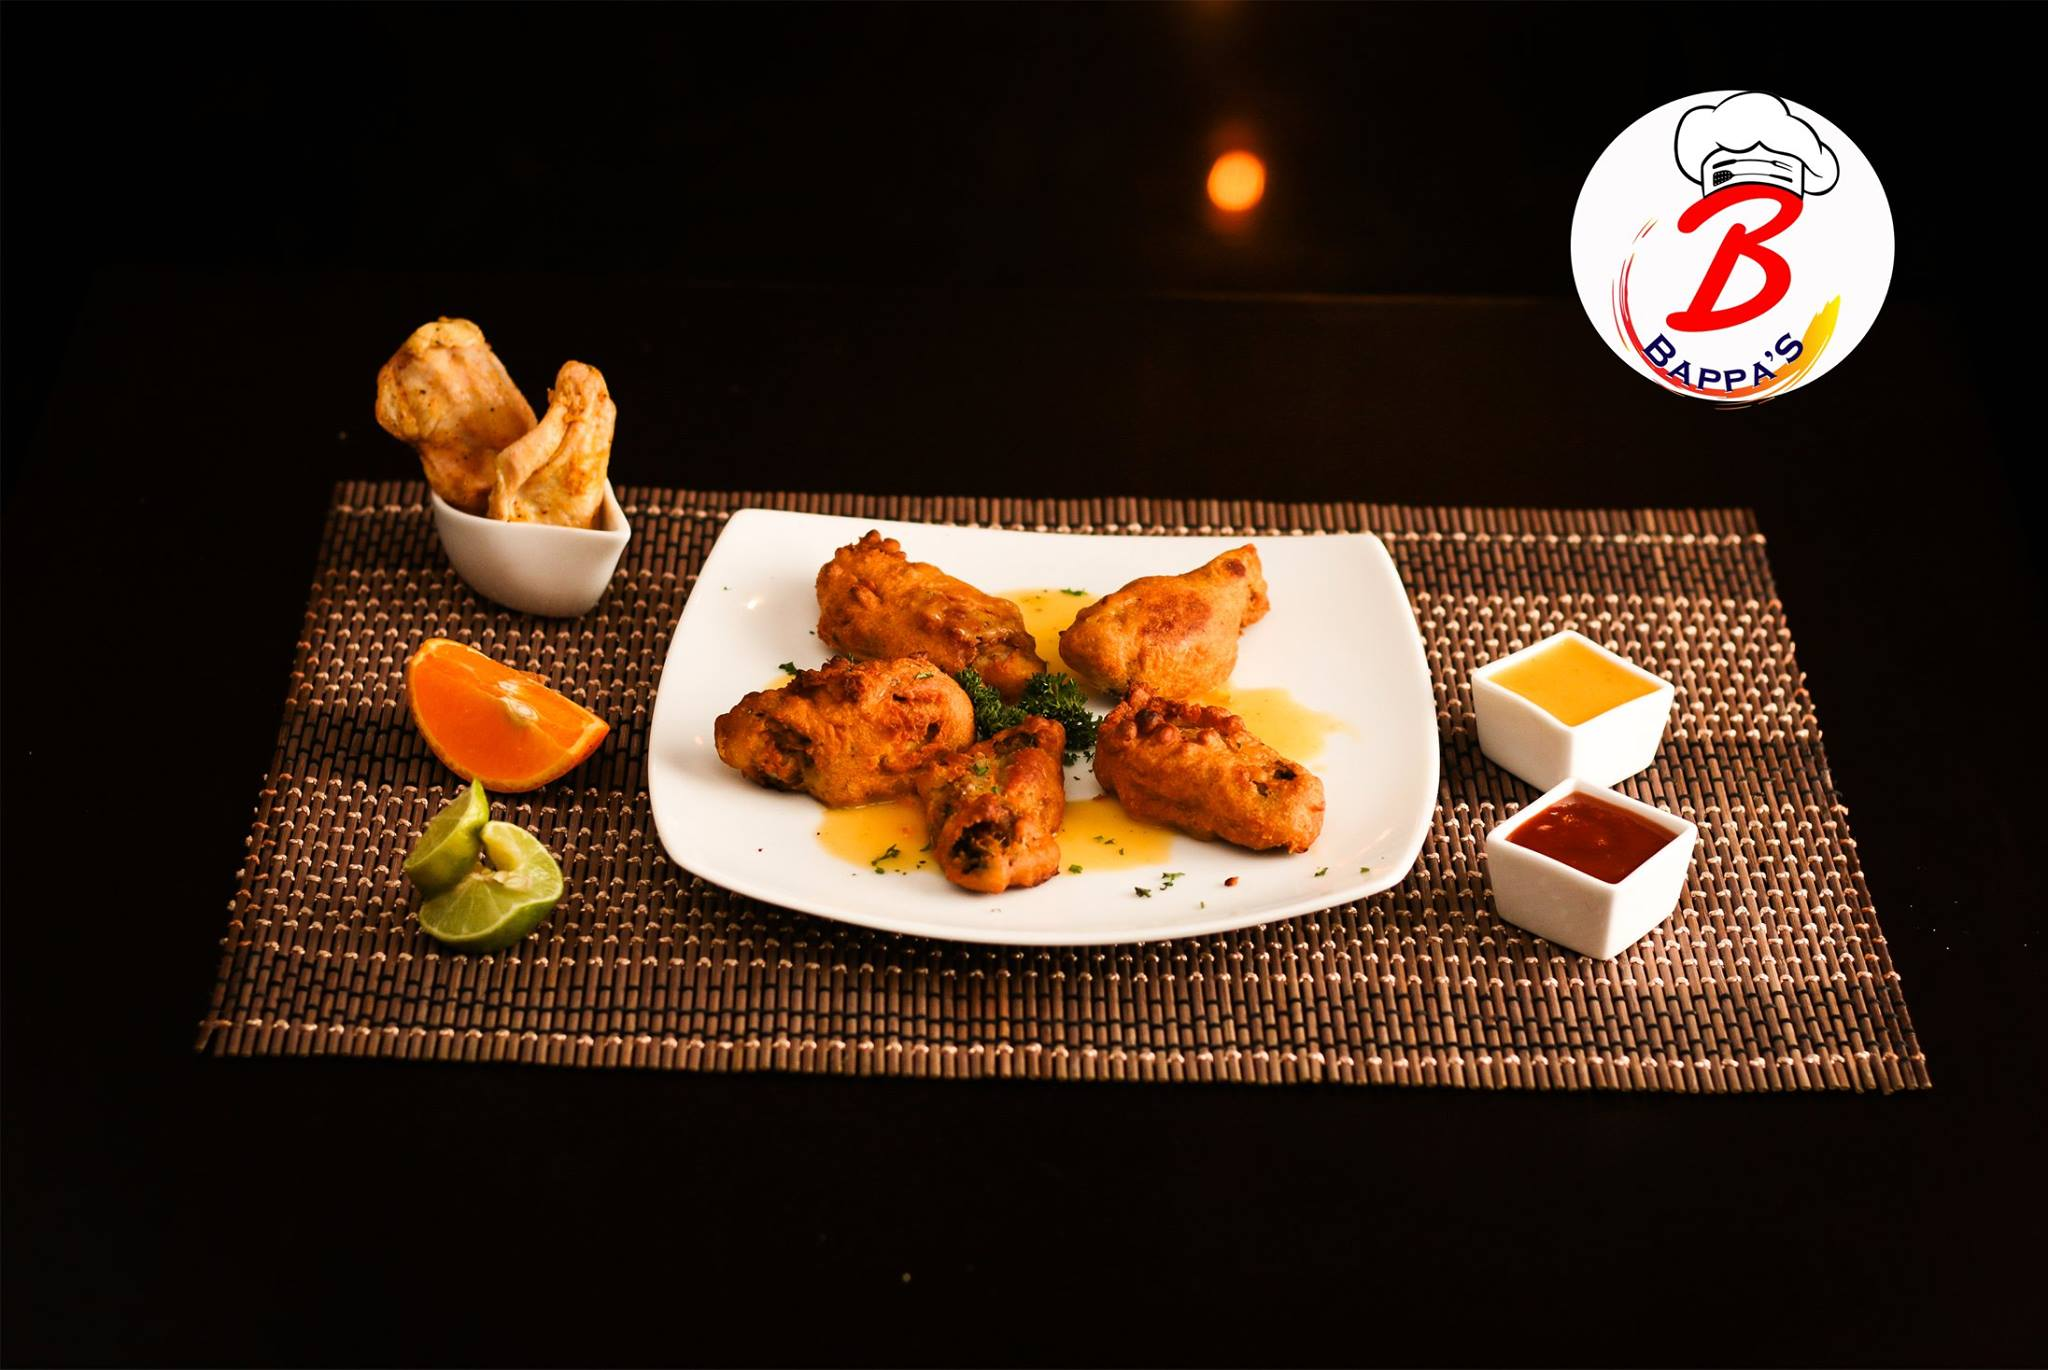 Bappa's Wok and Grill, Mount Lavinia